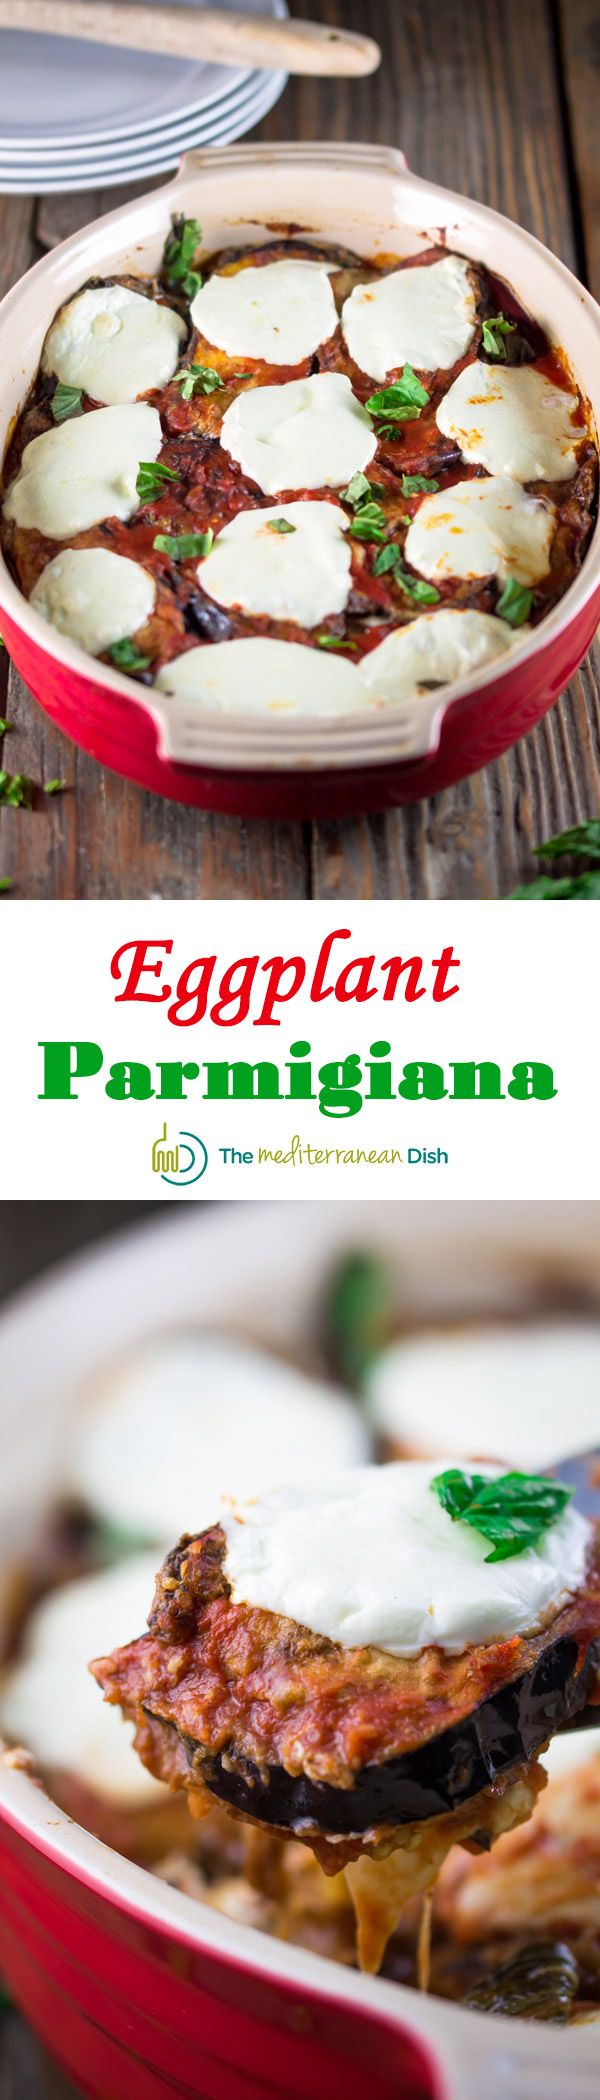 Eggplant Parmigiana Recipe with step-by-step photos from The Mediterranean Dish. Delicious!